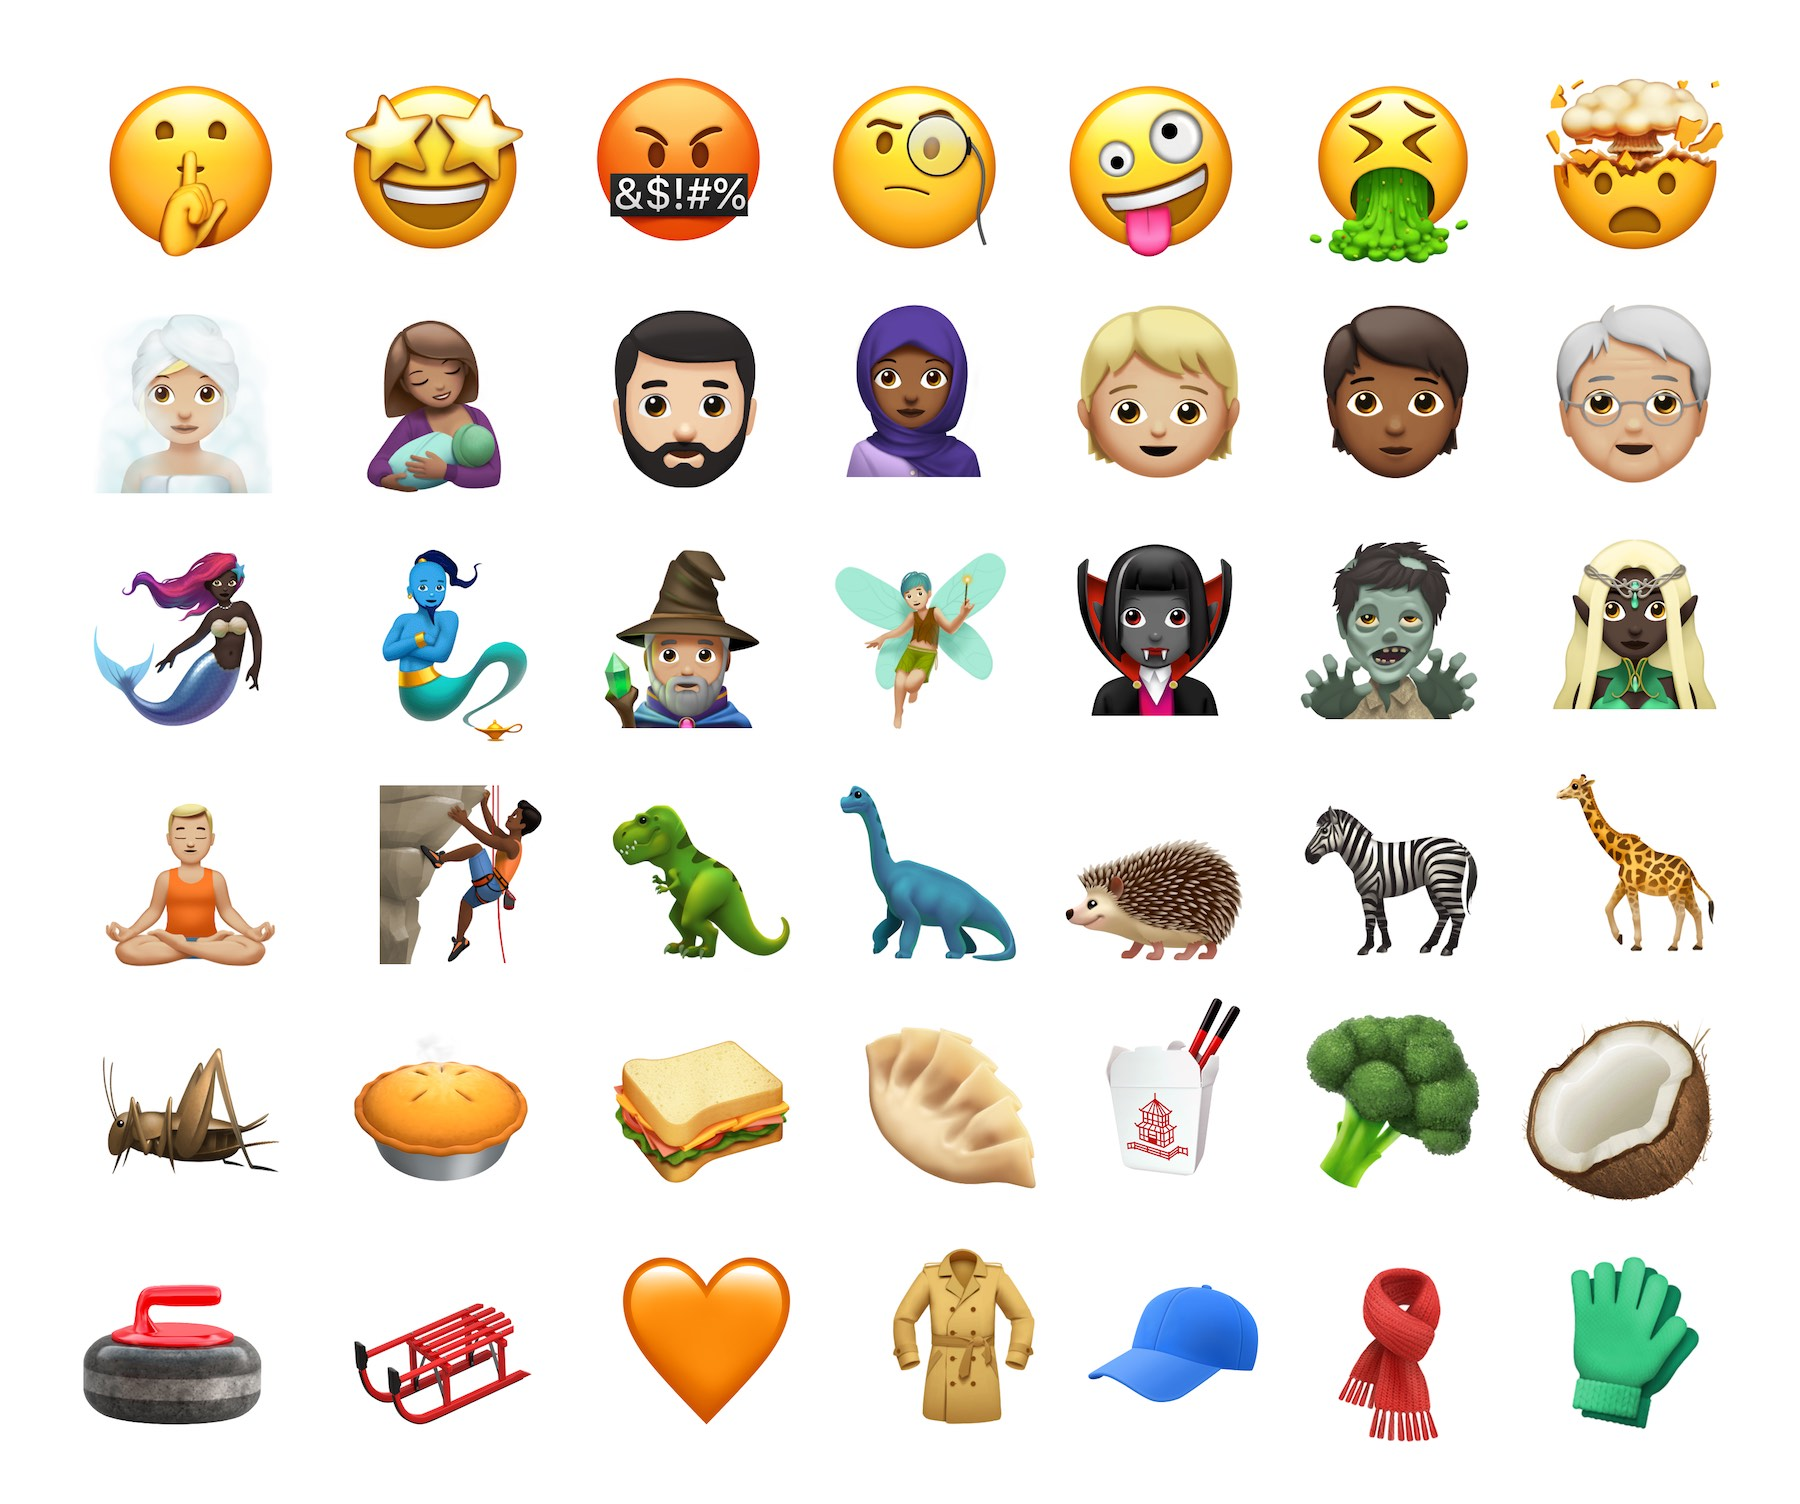 [Image: 2017-ios11.1-new-emojis-emoijpedia-apple.jpg]